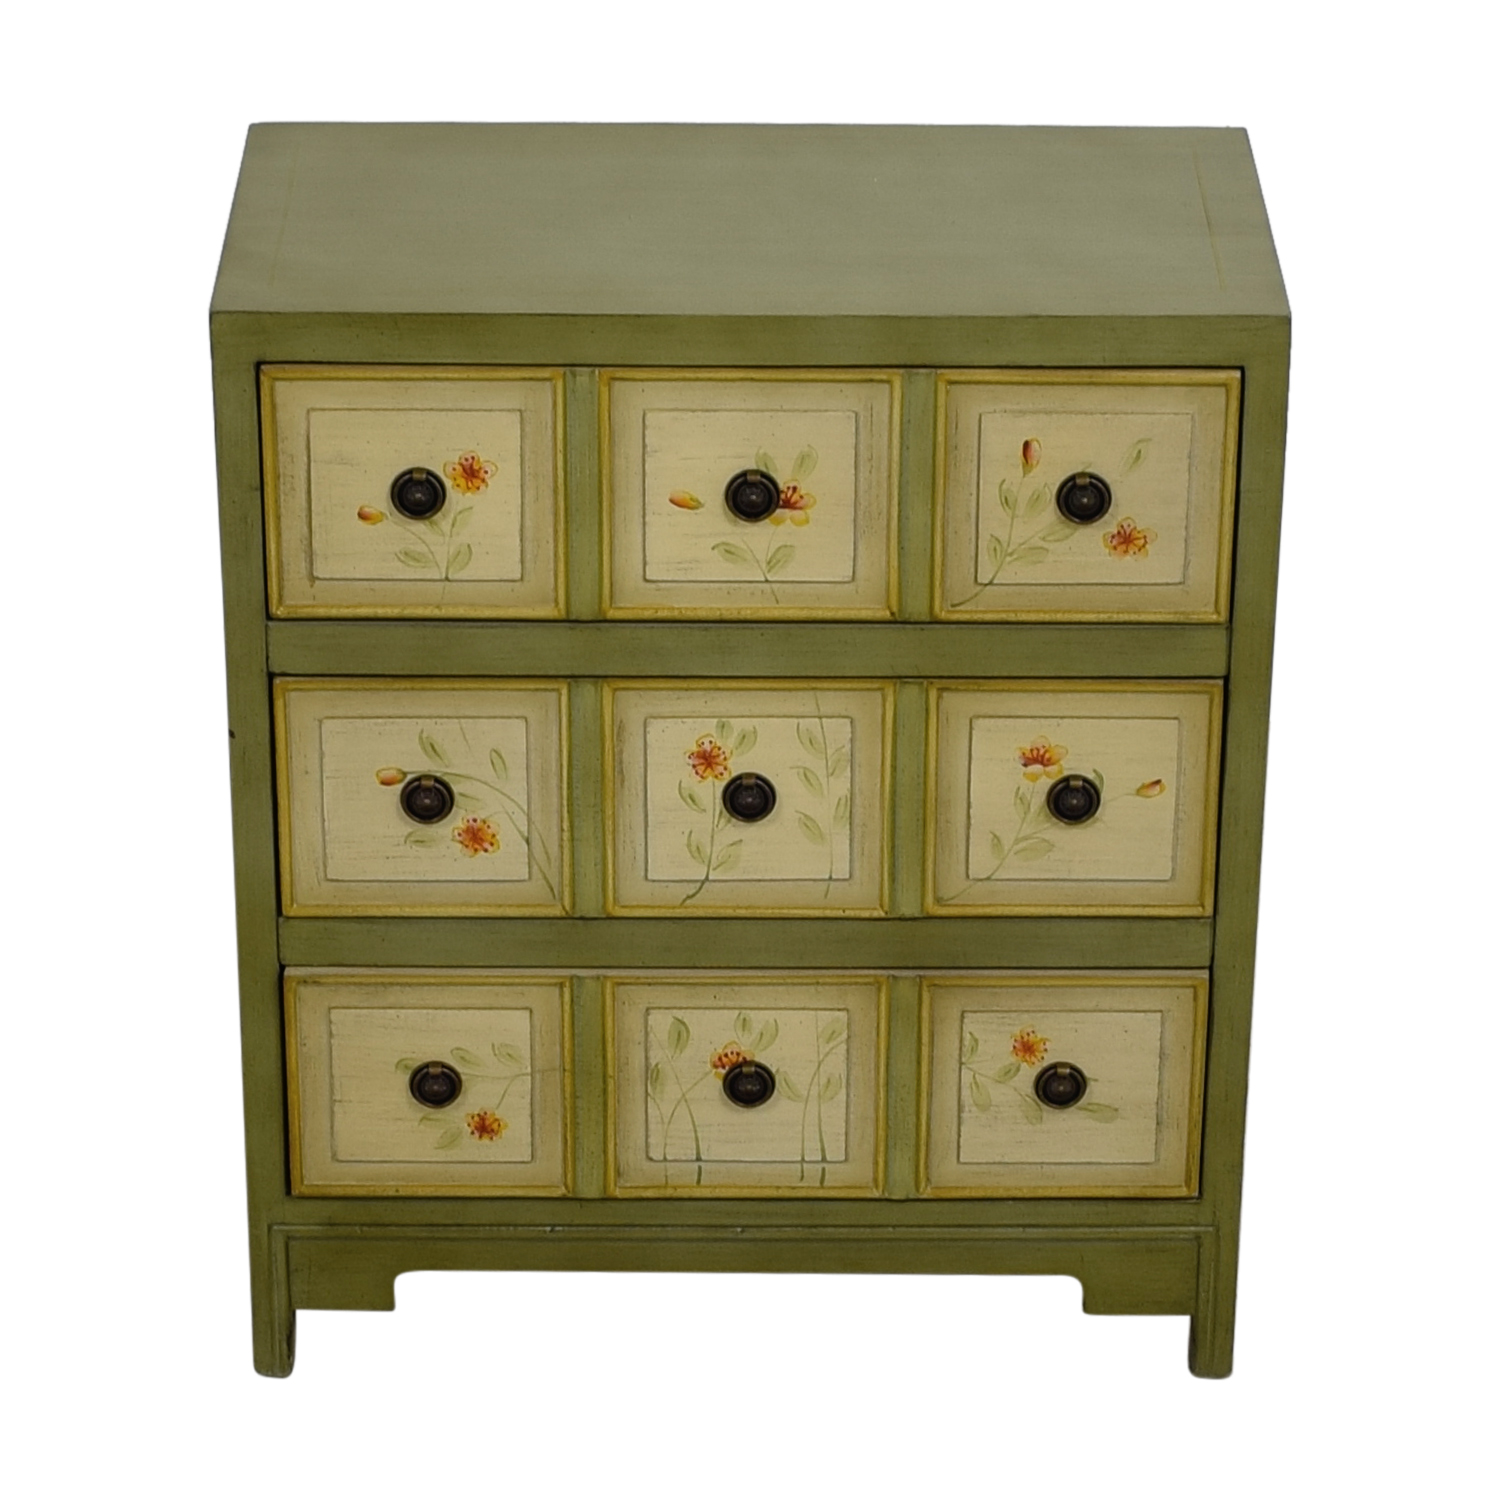 Raymour & Flanigan Raymour & Flanigan Green Floral Three-Drawer Cabinet used